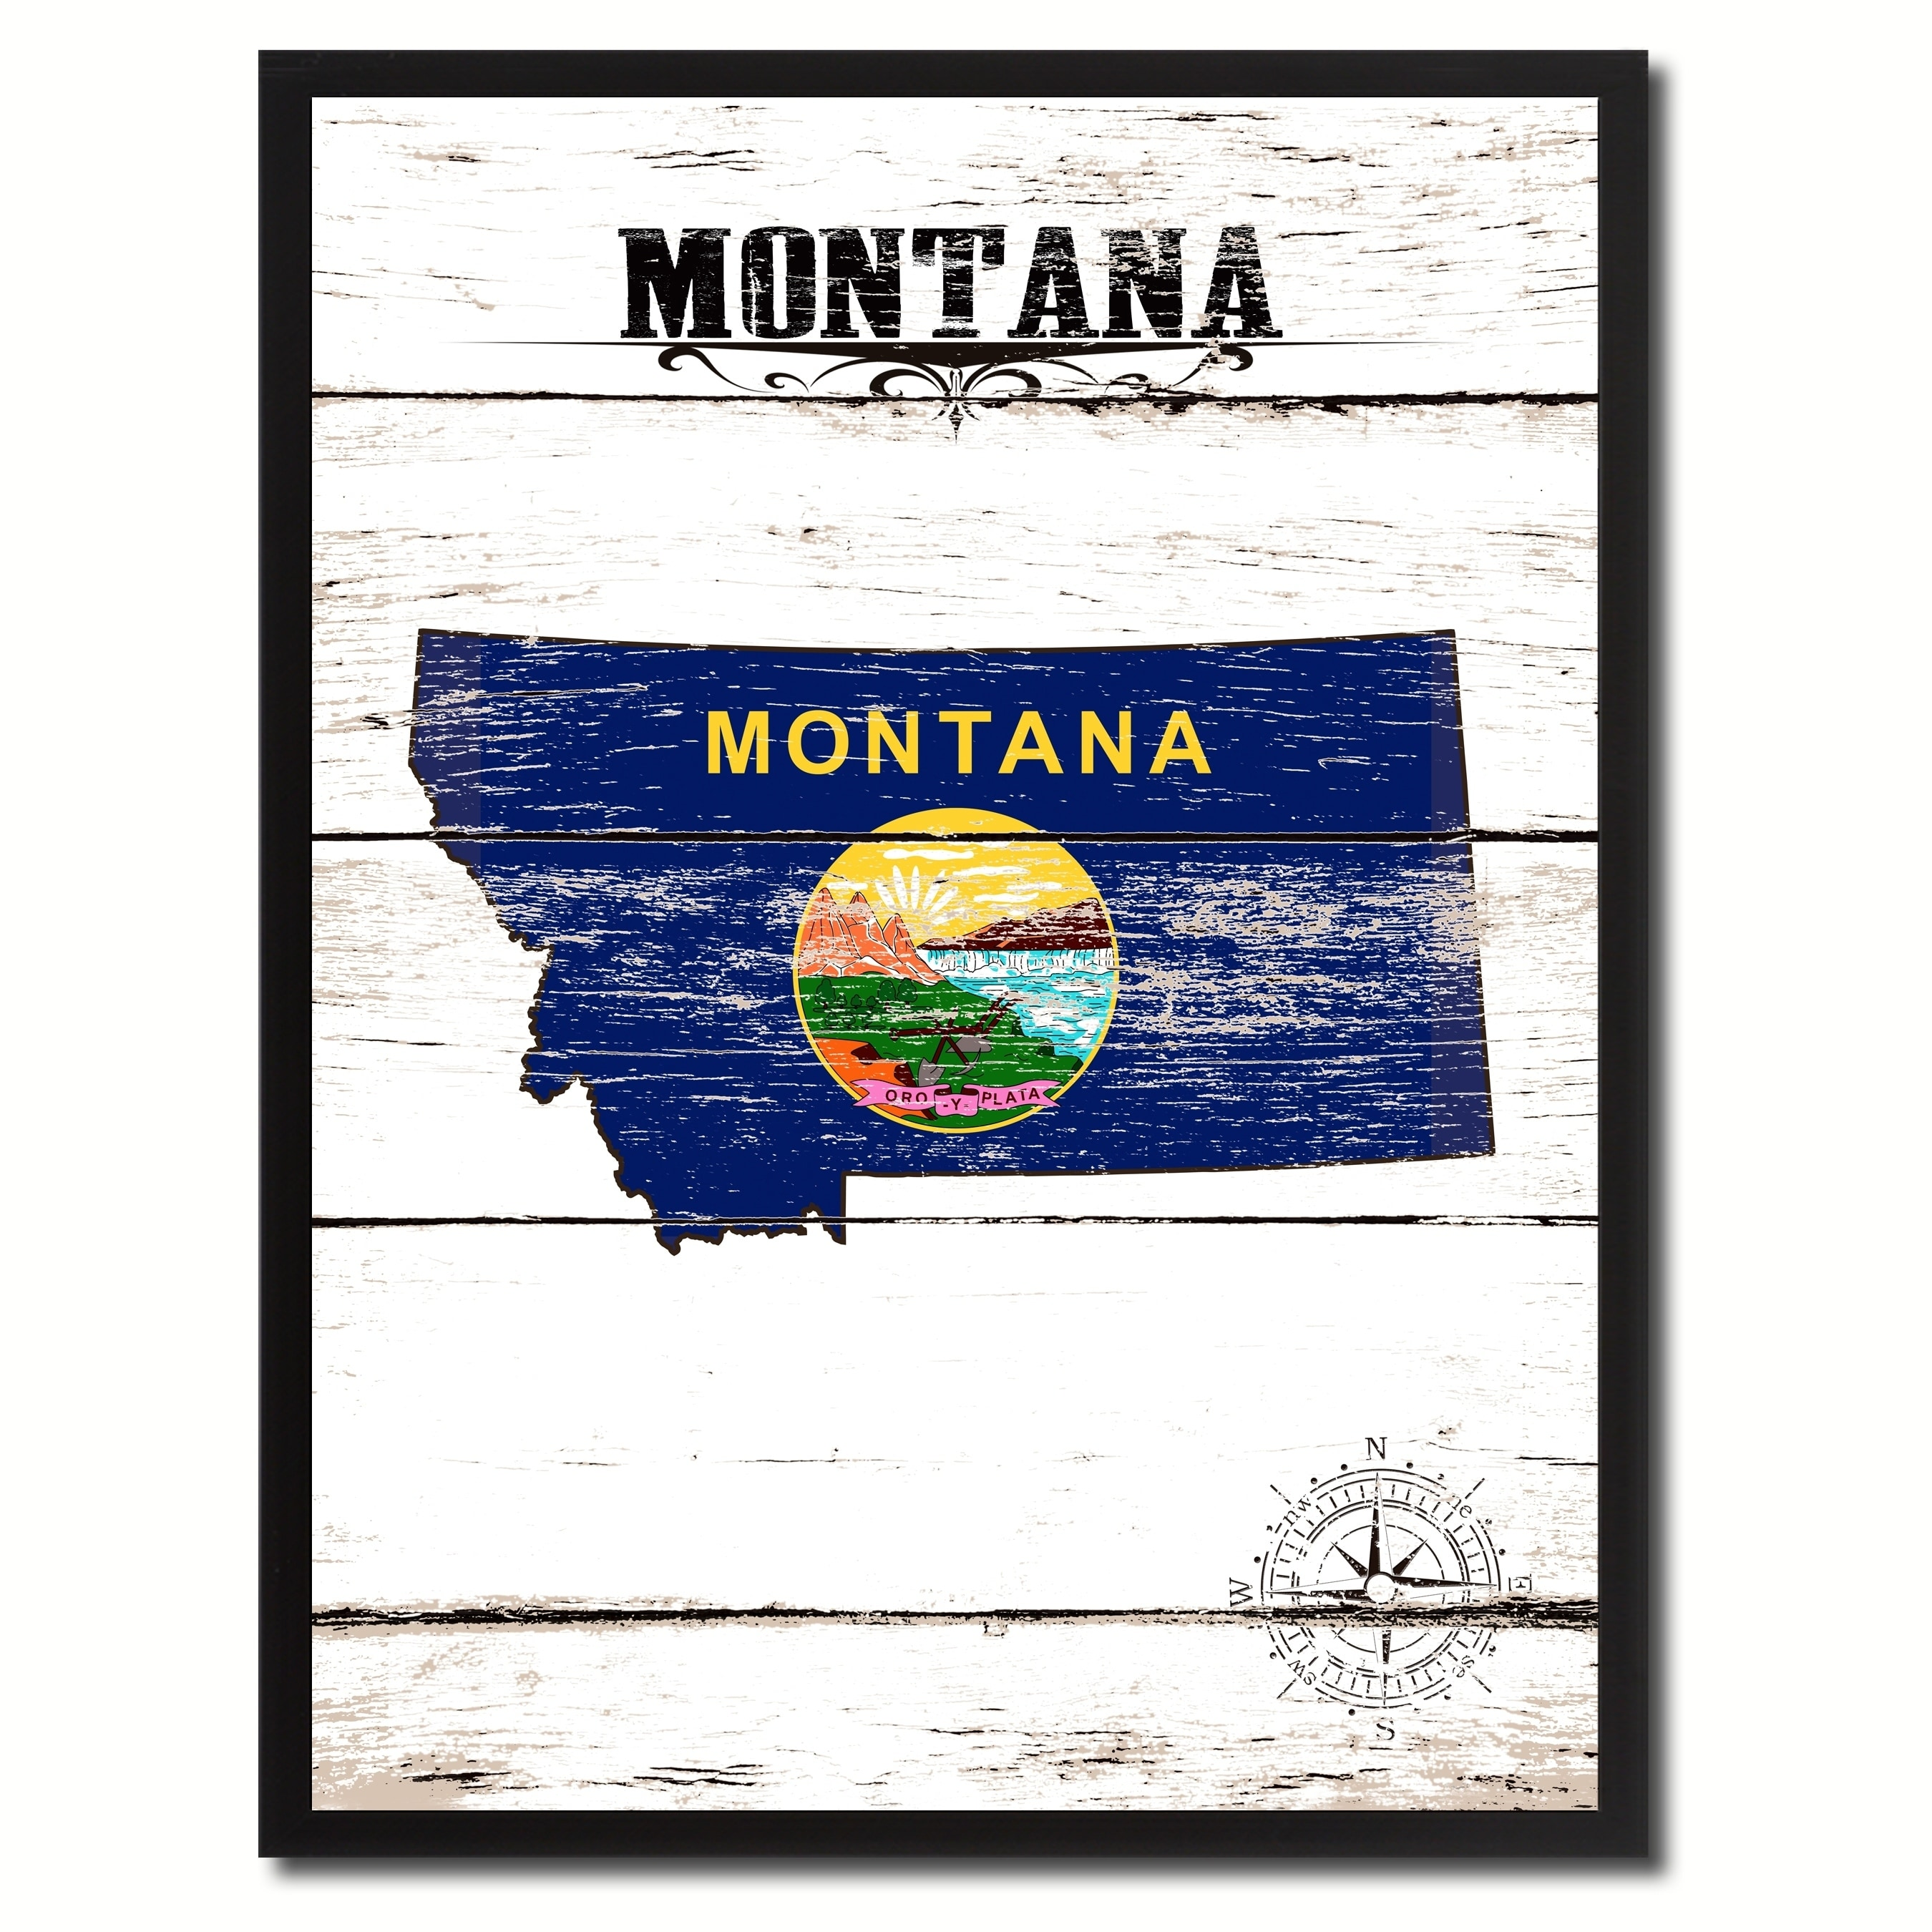 Montana State Vintage Flag Canvas Print Picture Frame Home Decor Wall Art Overstock 17982200